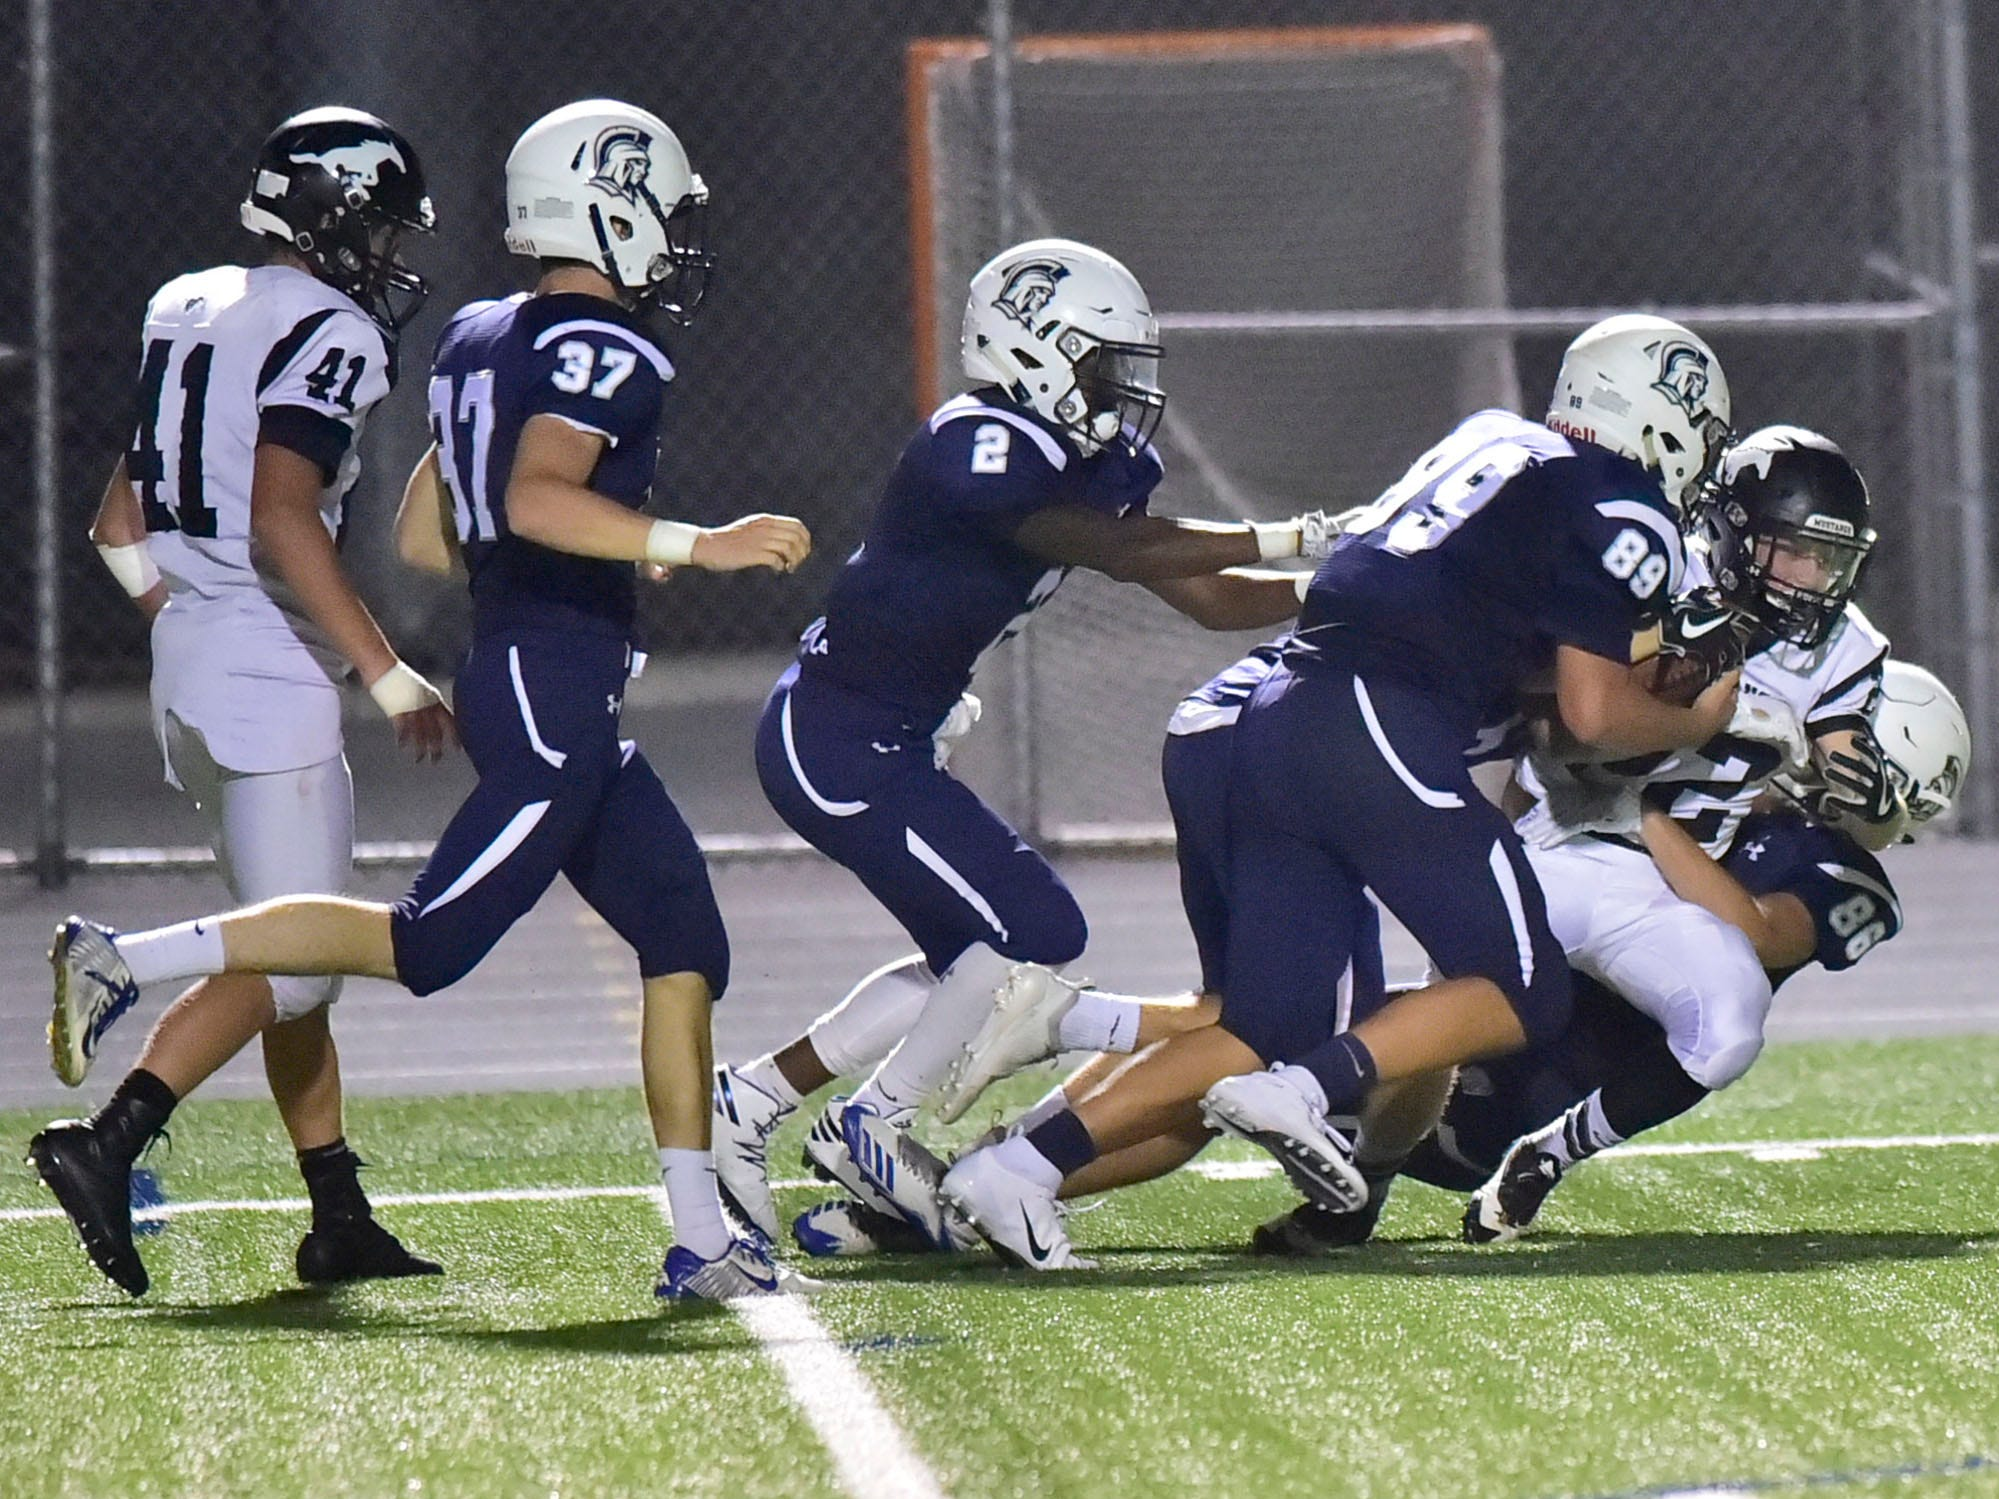 South Western's Aaron Fry, right, is met by a host of Chambersburg defenders. Chambersburg defeated South Western 51-26 in football on Friday, Aug. 31, 2018.